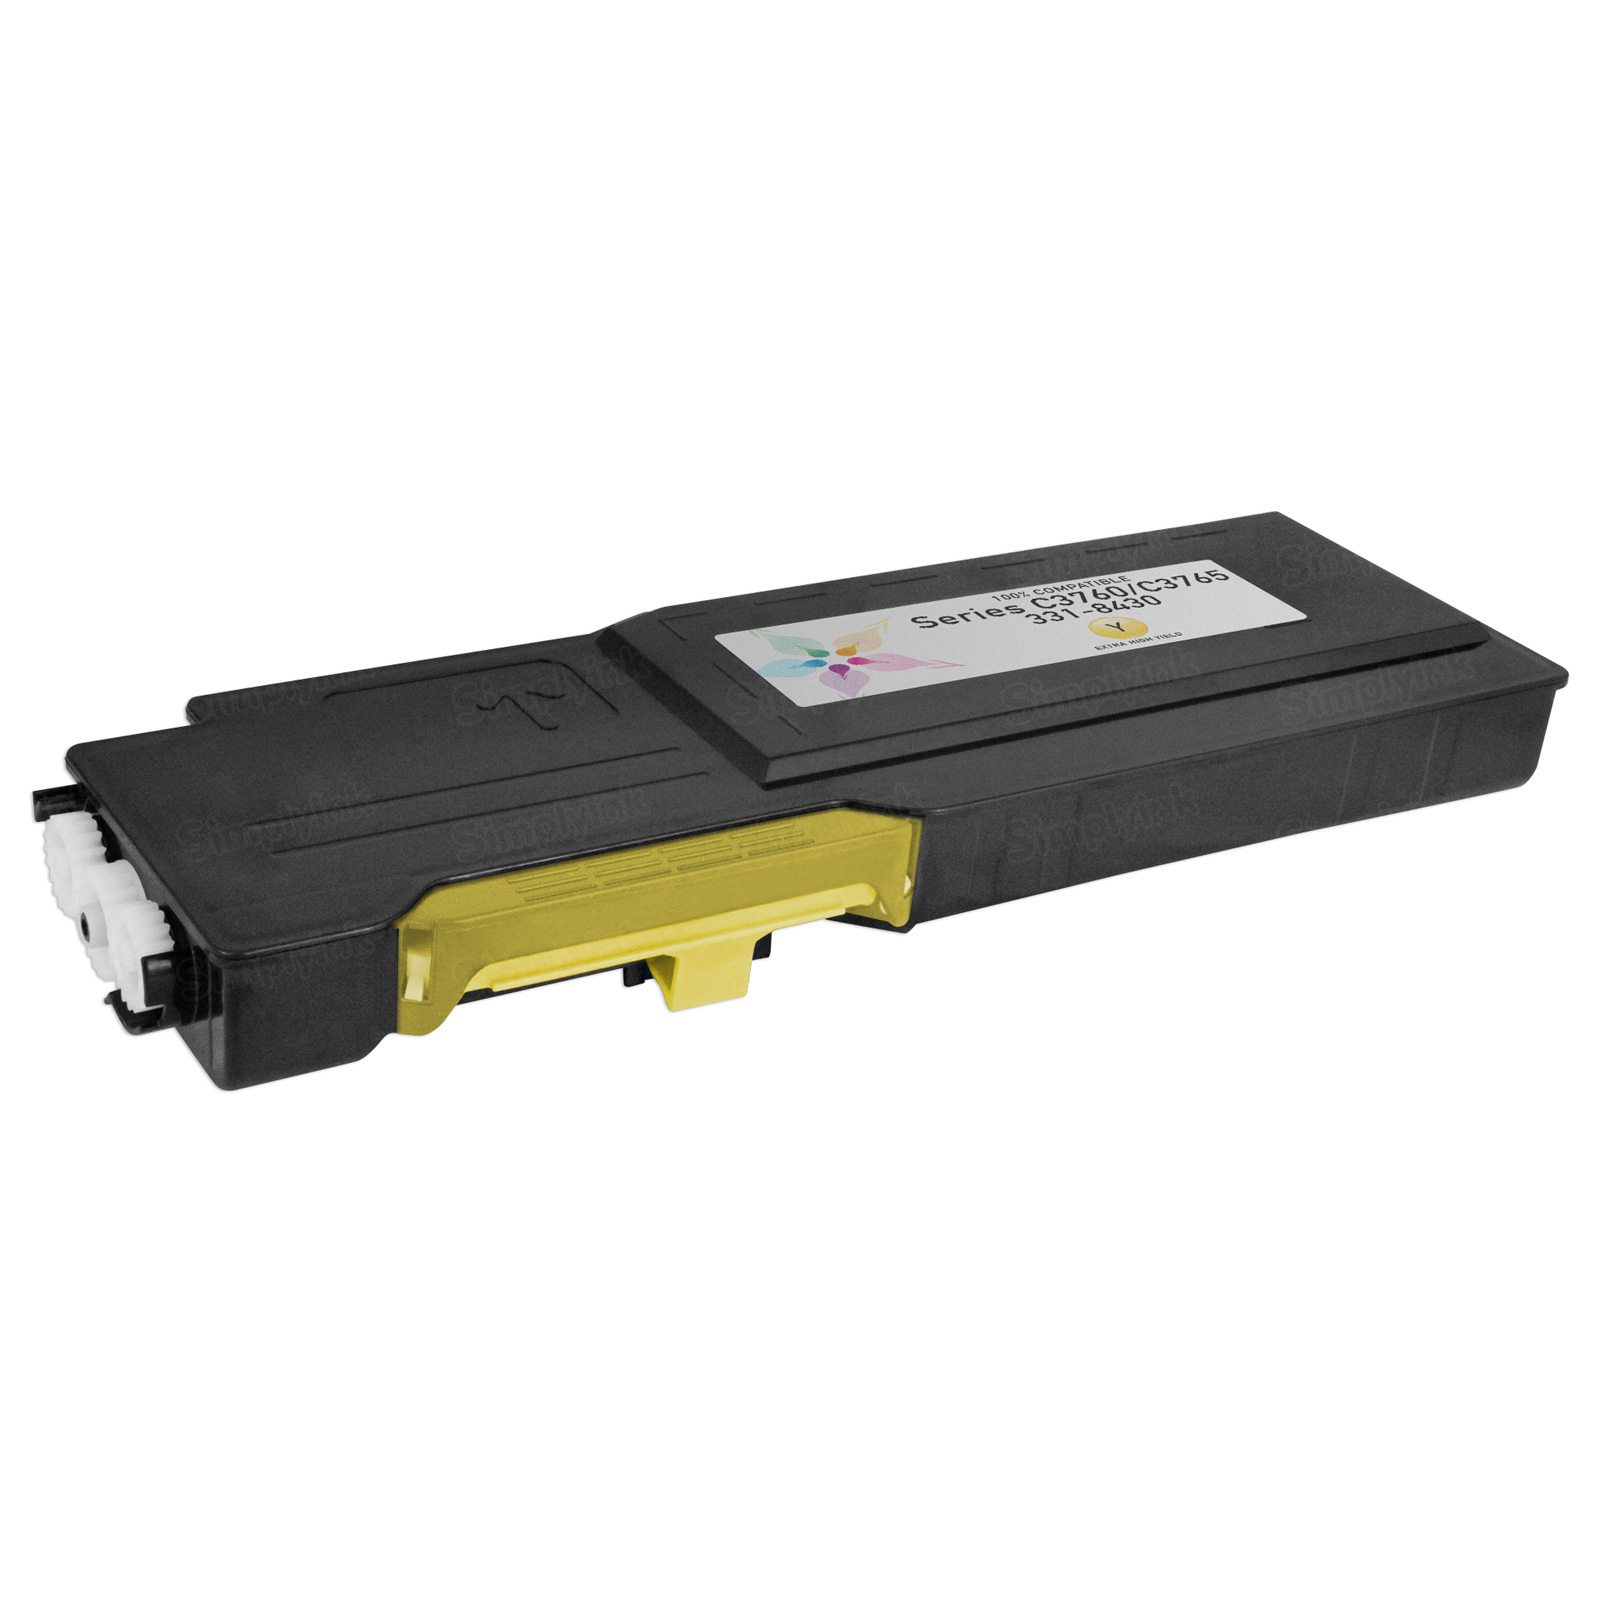 Compatible Alternative for 331-8430 Extra HY Yellow Laser Toner